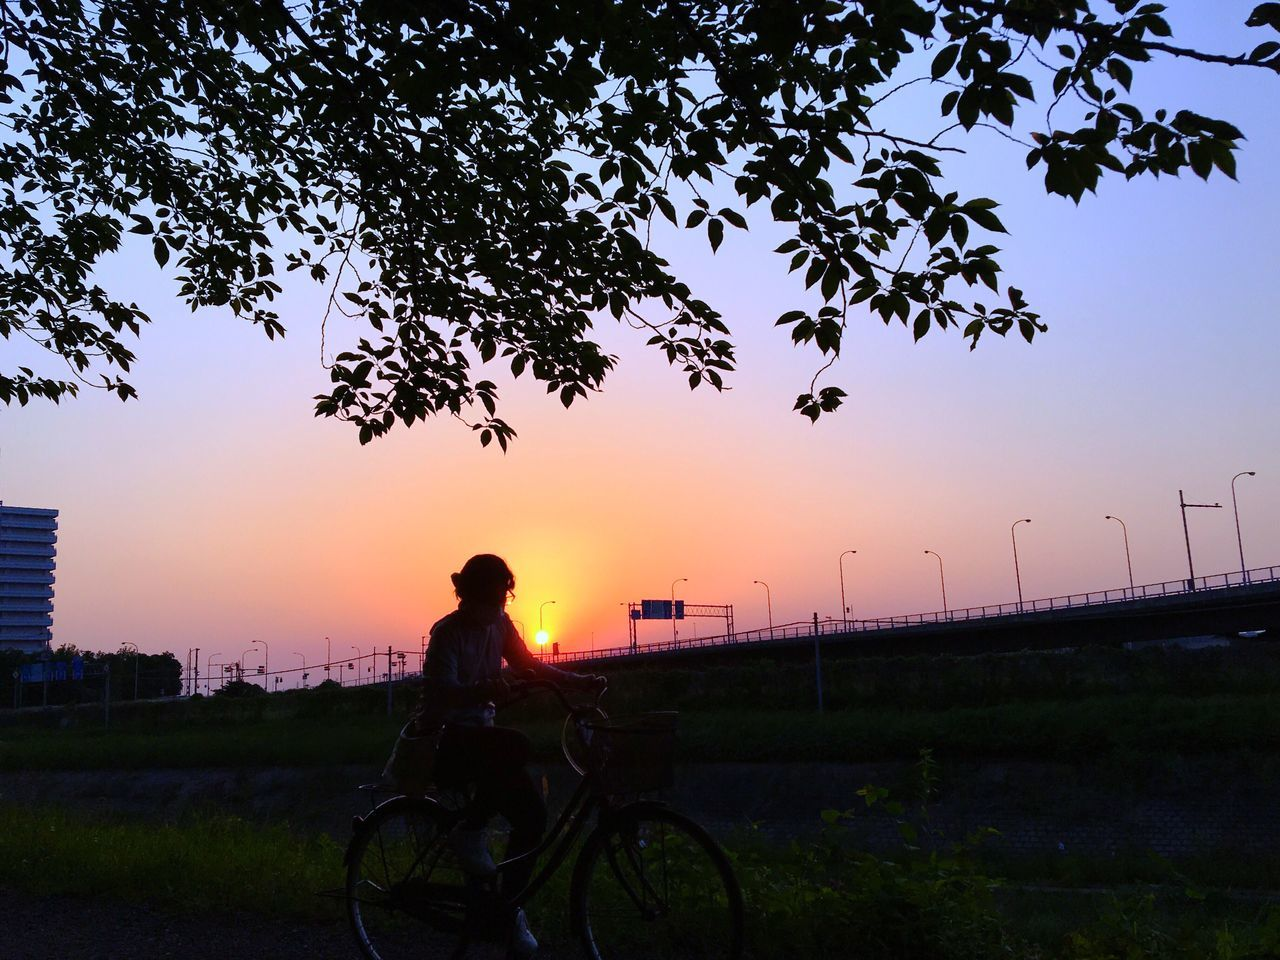 Sunset Rider Tree Bicycle Nature One Person Sky Silhouette Growth Outdoors Sitting Transportation Field Beauty In Nature Scenics Real People Grass Lifestyles Women Landscape Photography Themes